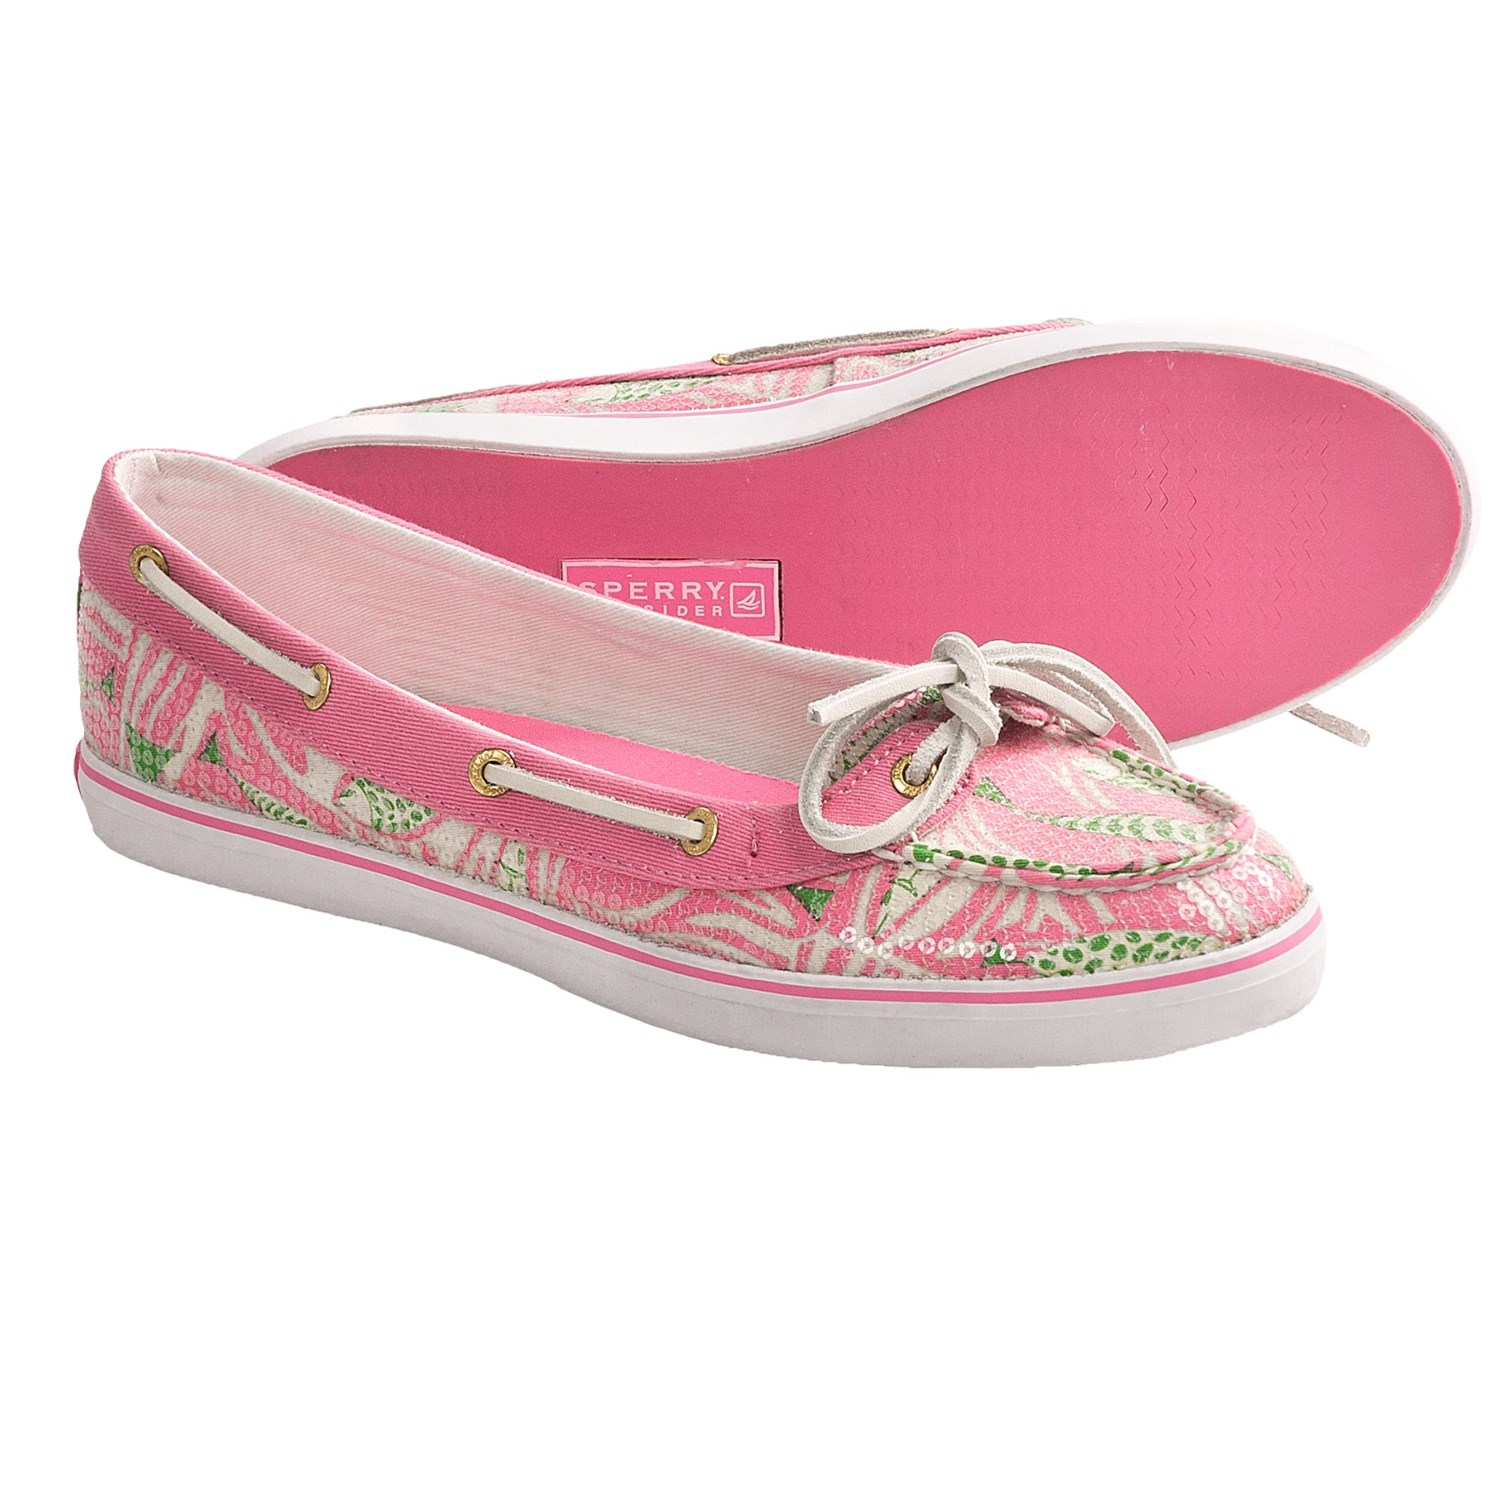 Sperry Top-Sider Lola Print Shoes (For Women) in Pink Fish Print